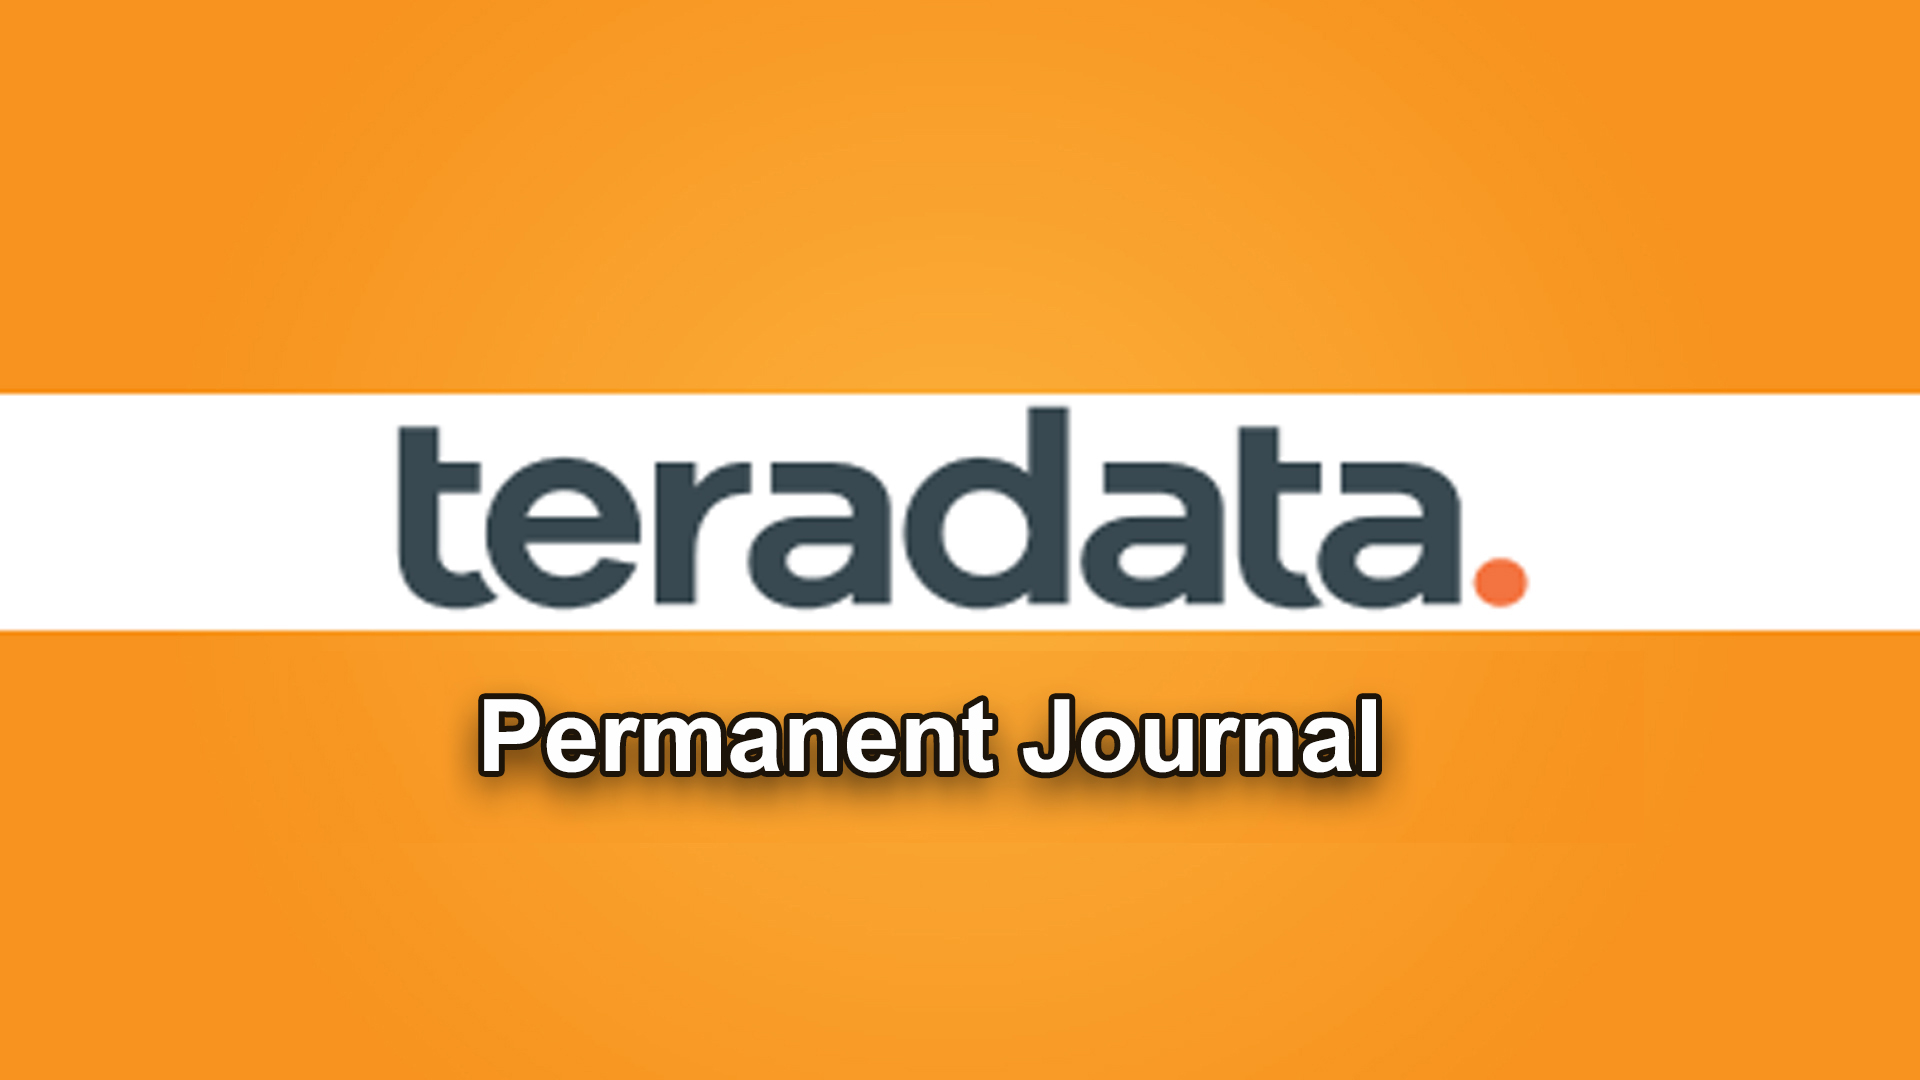 PERMANENT JOURNAL